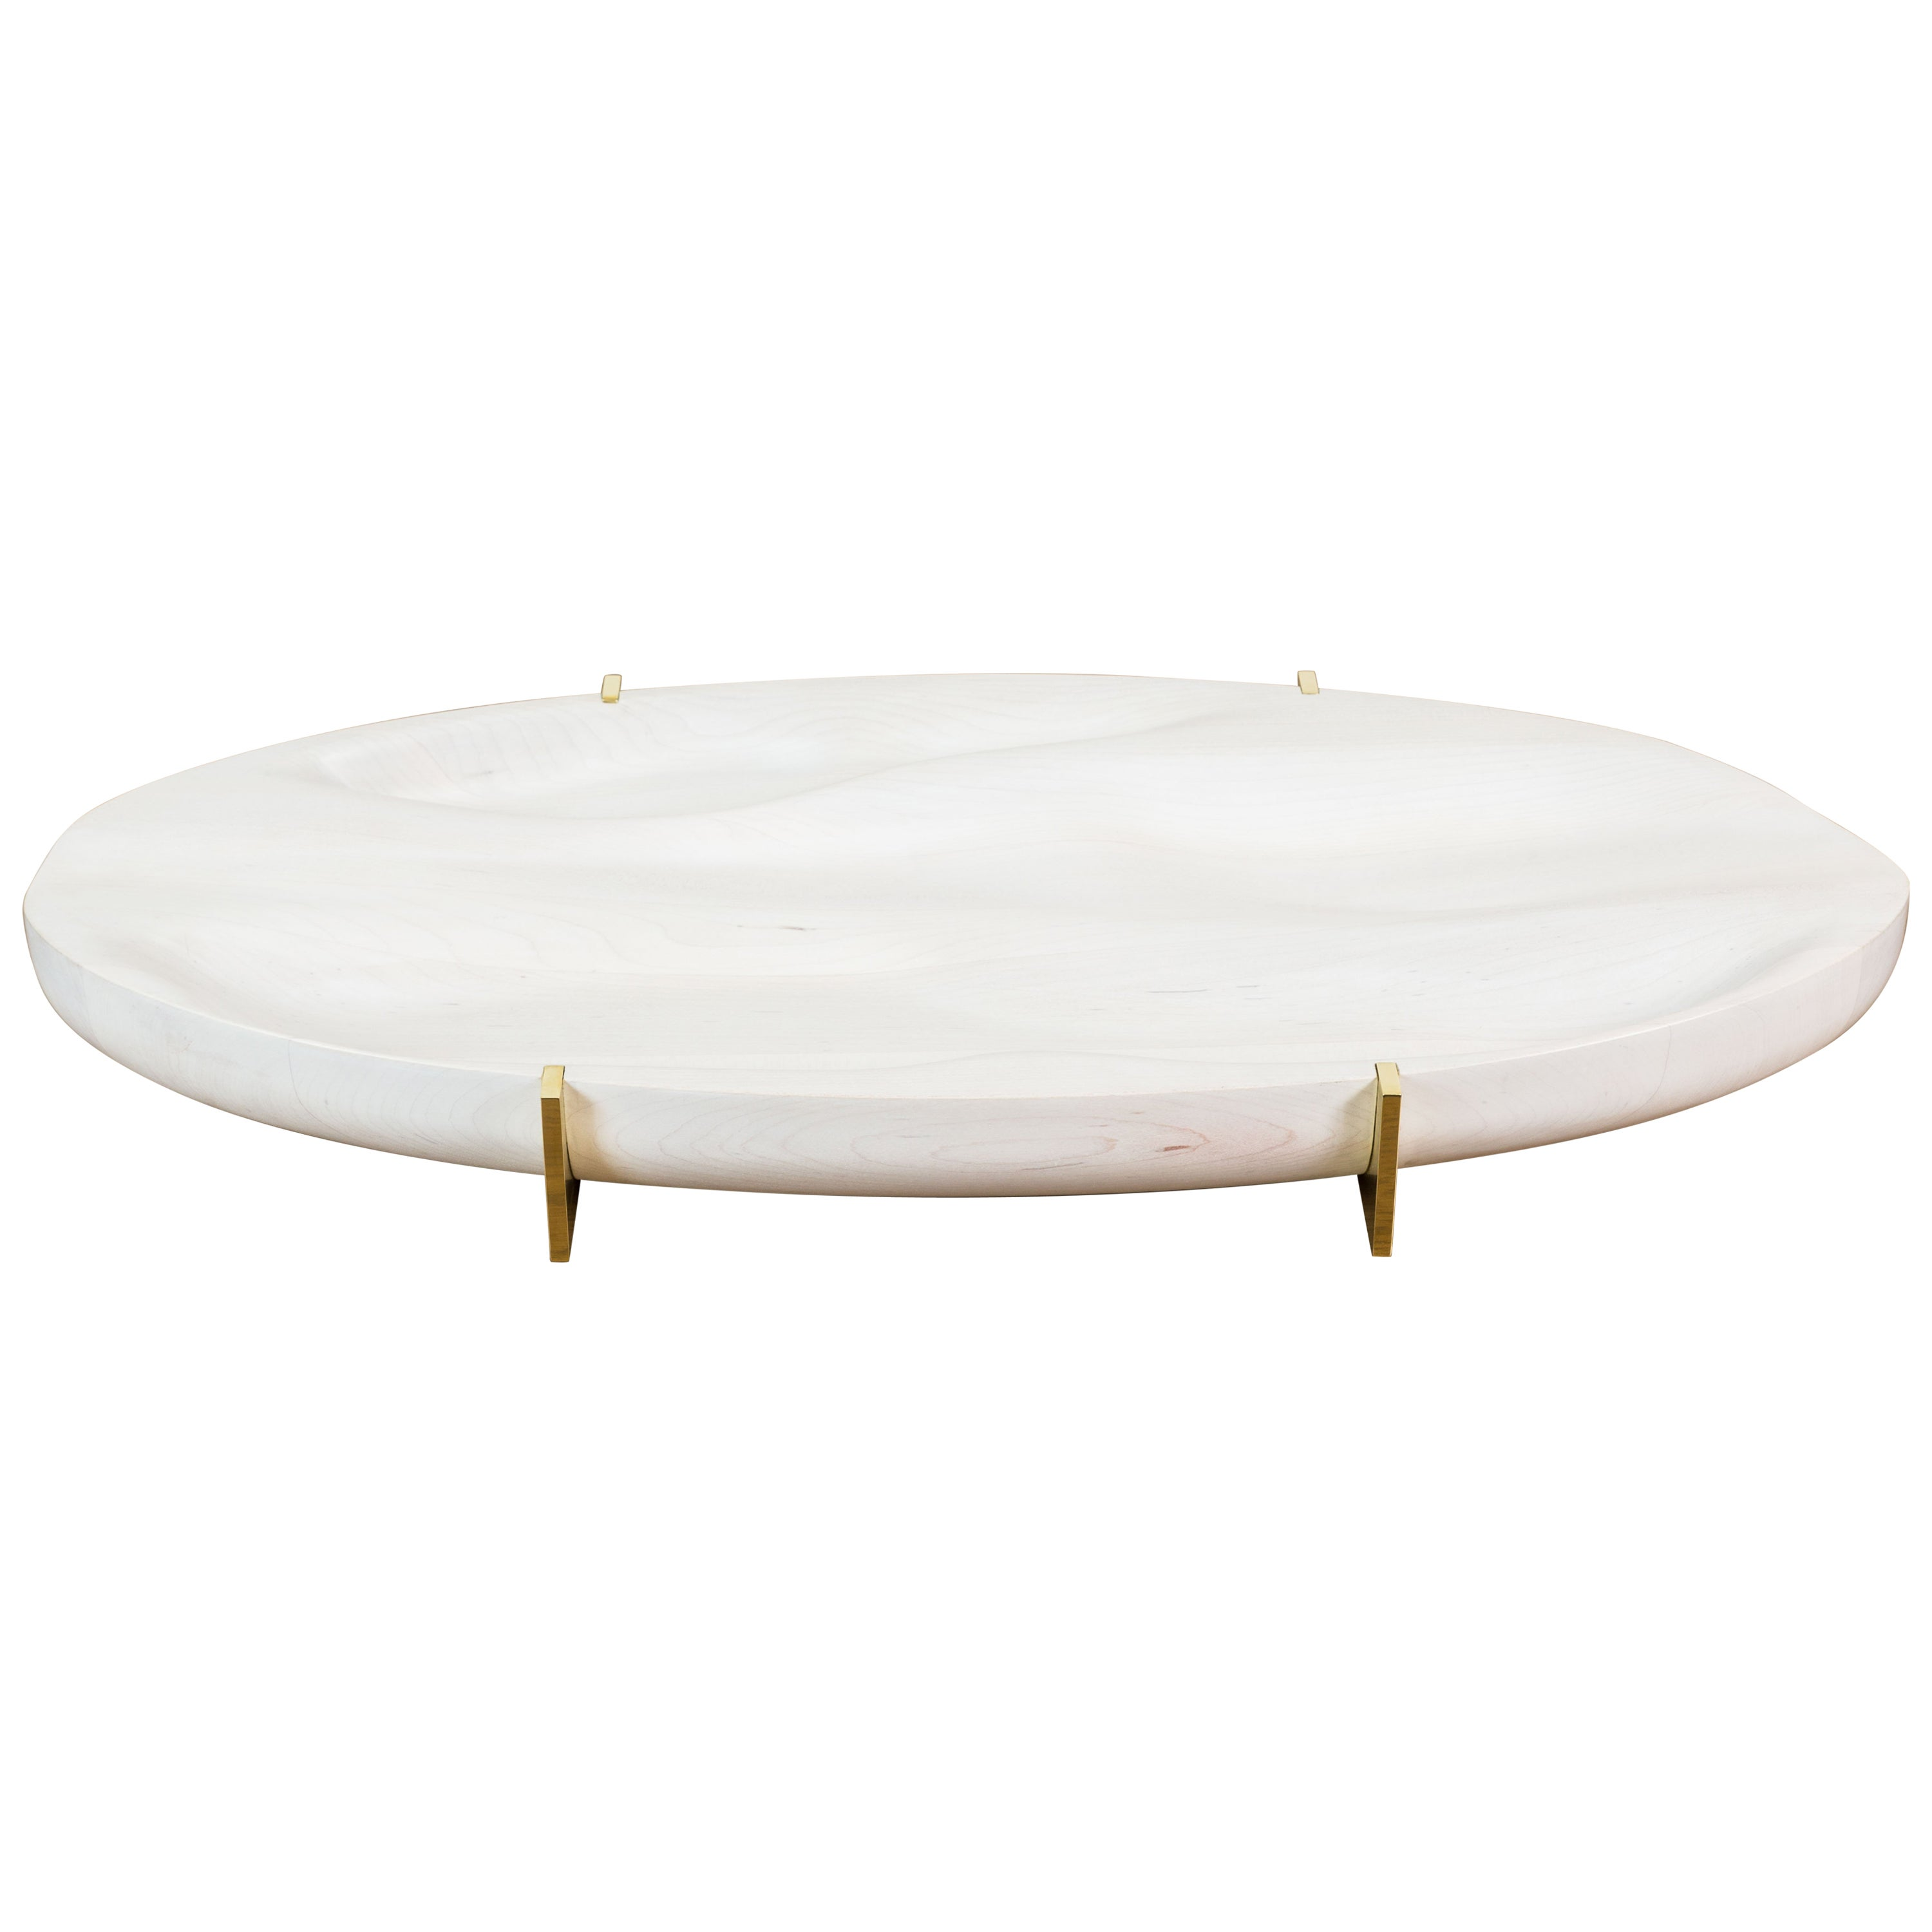 Bleached Maple and Brass Oval Tray by Vincent Pocsik for Lawson-Fenning